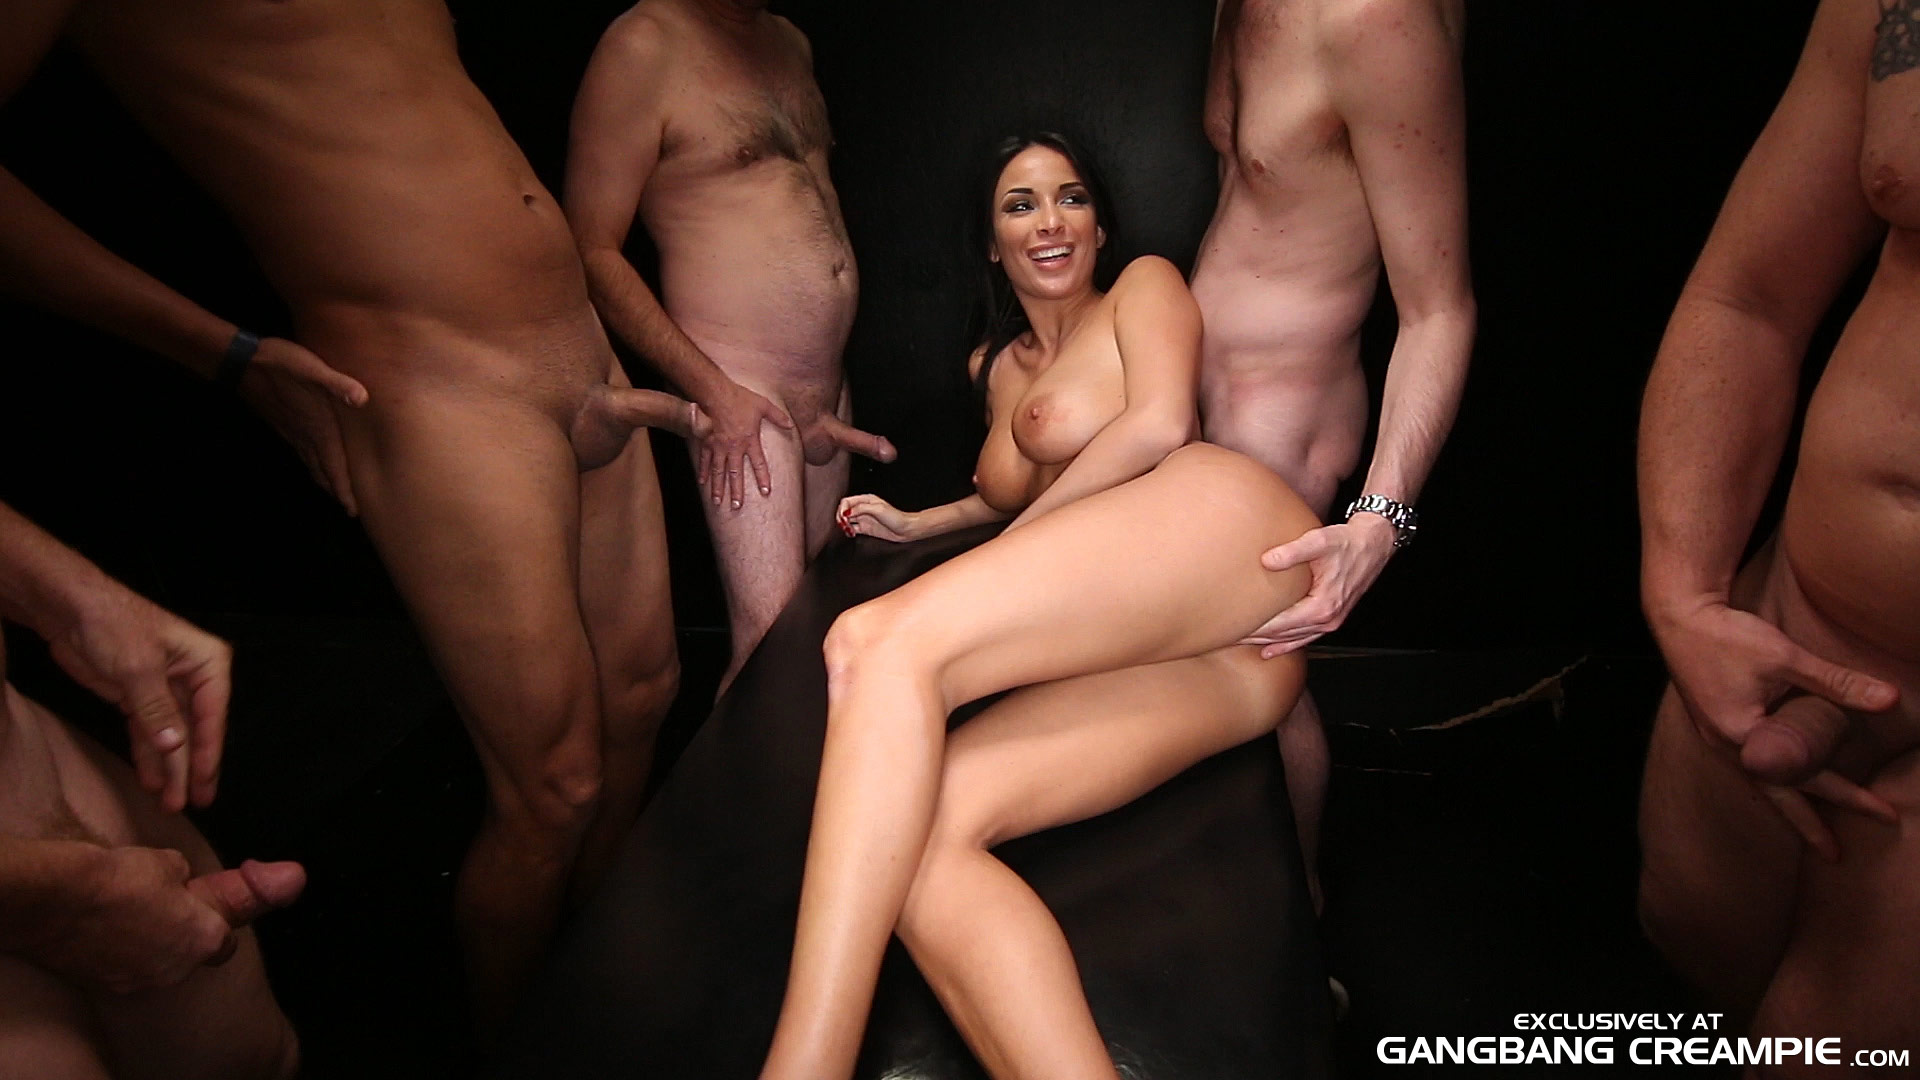 Best of anal creampies compilation vol 1 full movie bangcom 8